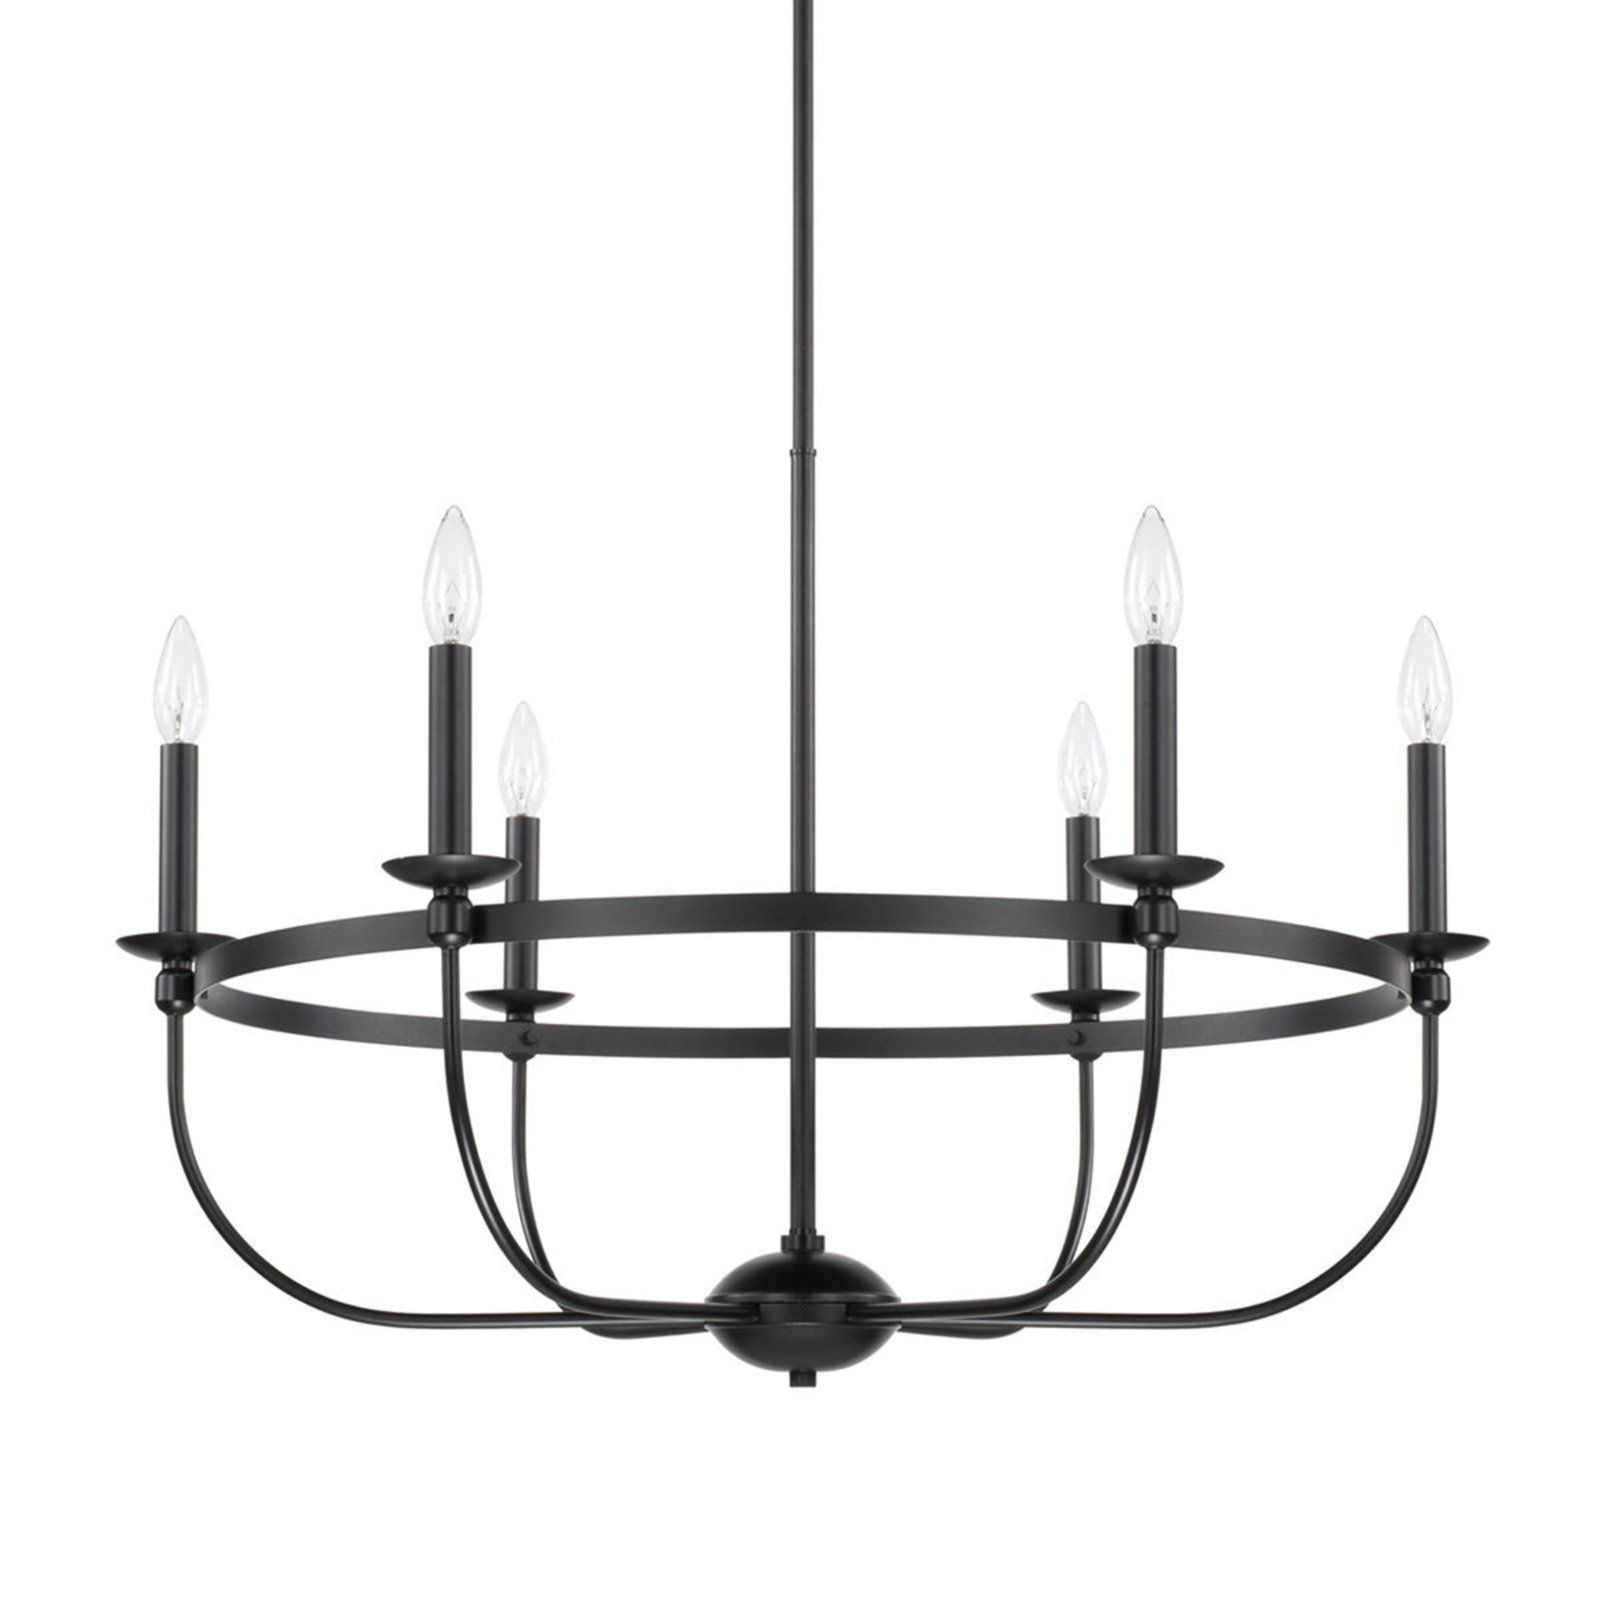 Simply Black Basket Chandelier – 6 Light In 2019 | Extreme With Hamza 6 Light Candle Style Chandeliers (View 7 of 30)